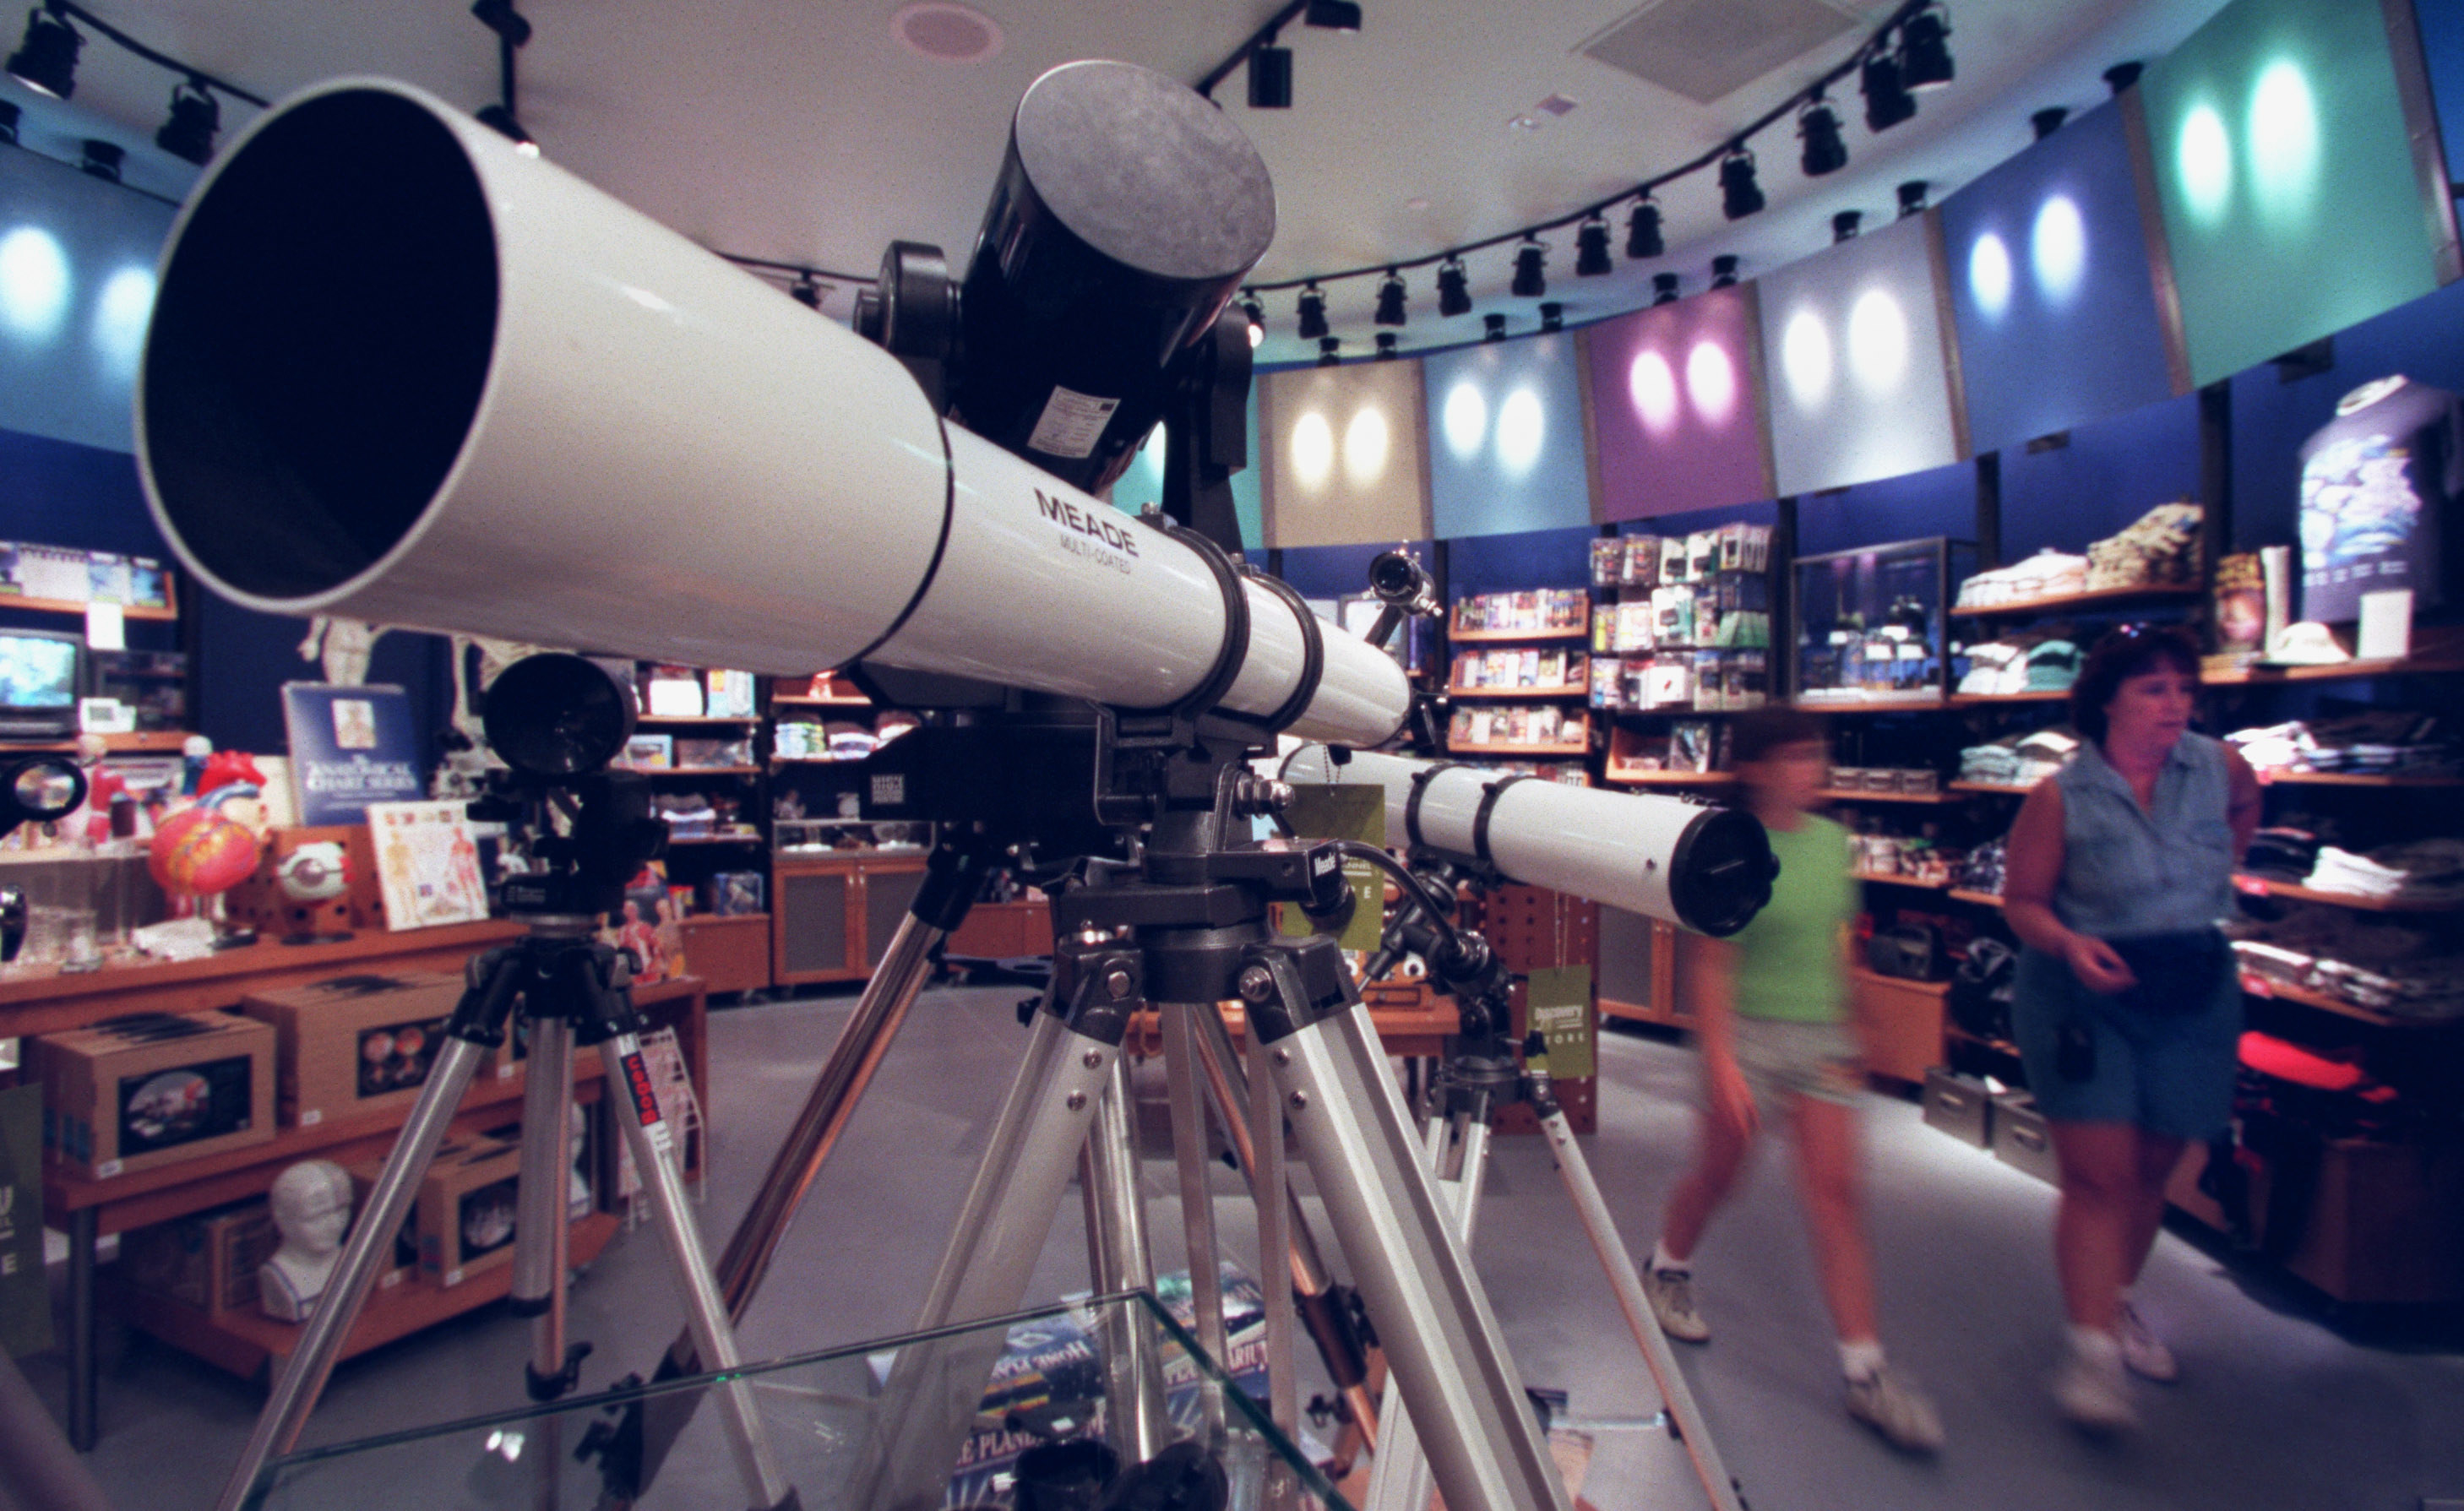 The back of Discovery Channel Store with shoppers, shirts stacked on the wall, and a collection of telescopes in the middle